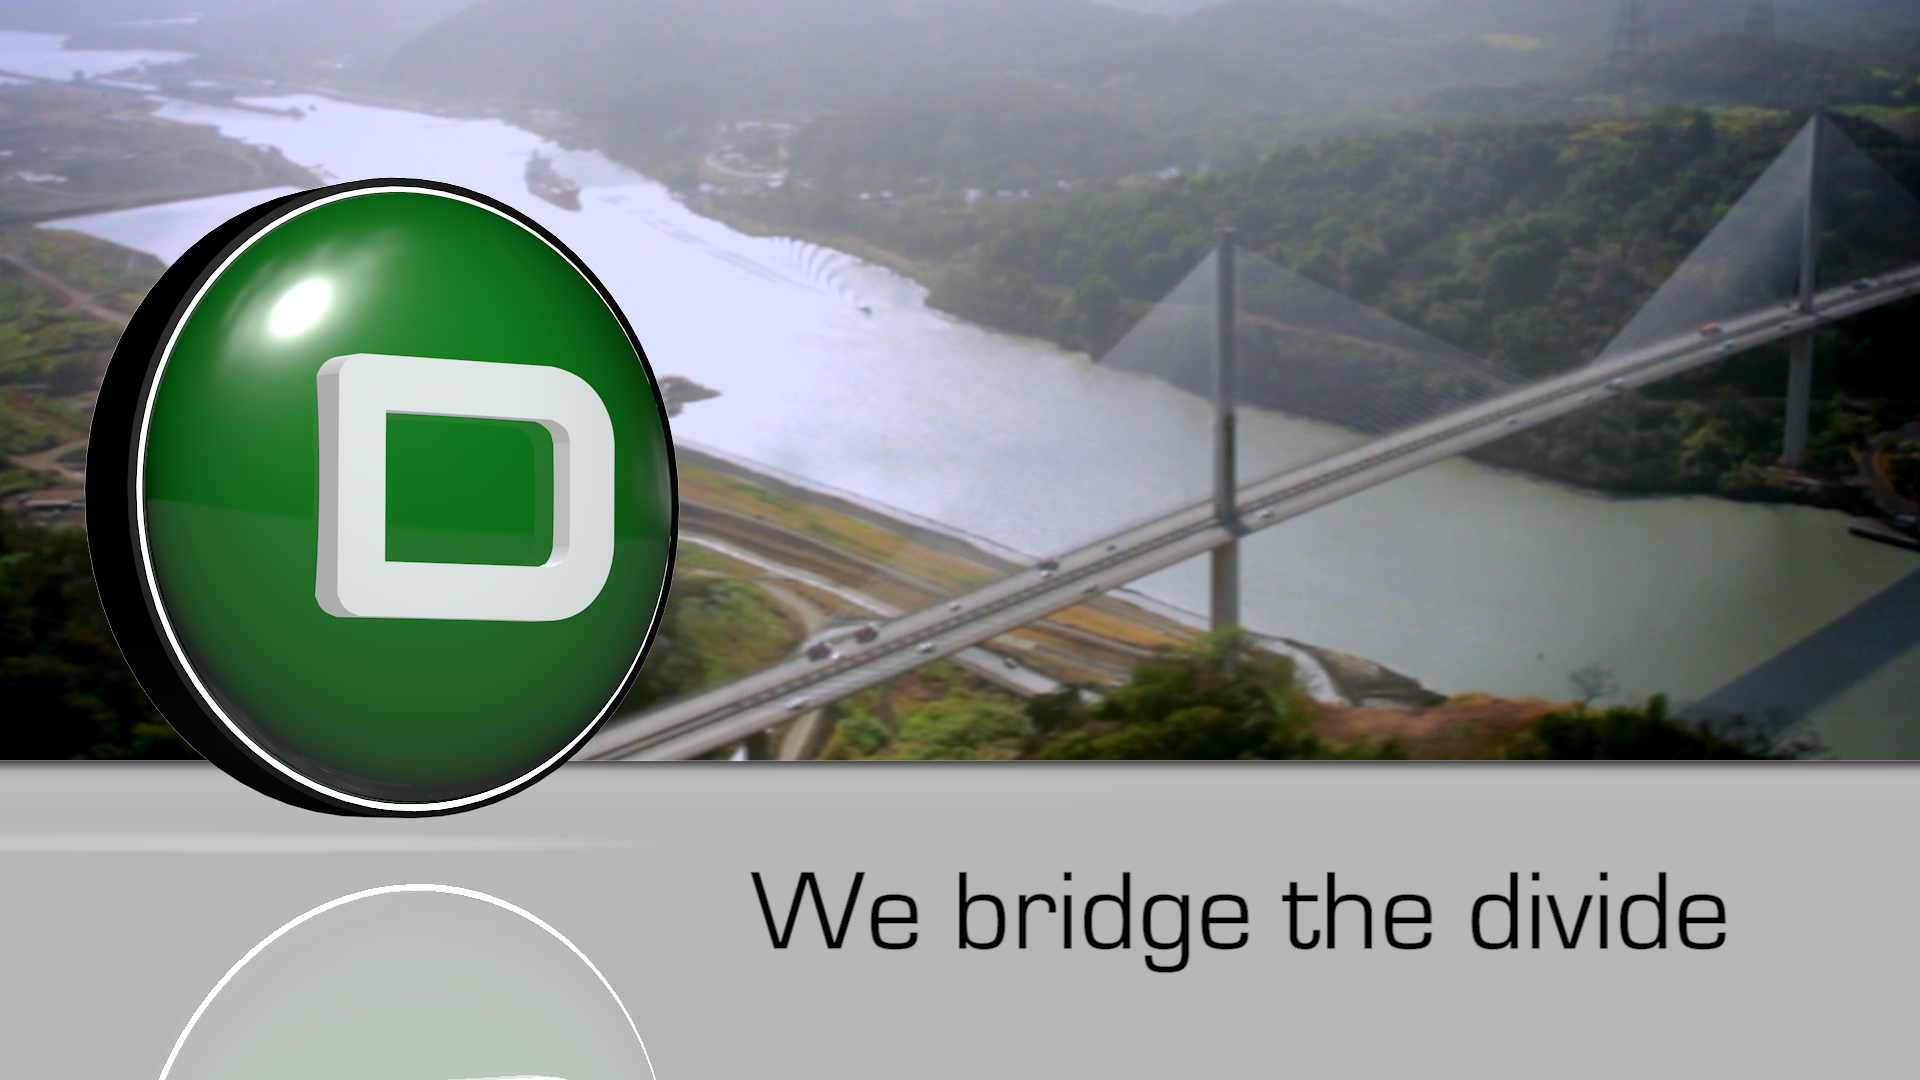 We bridge the divide